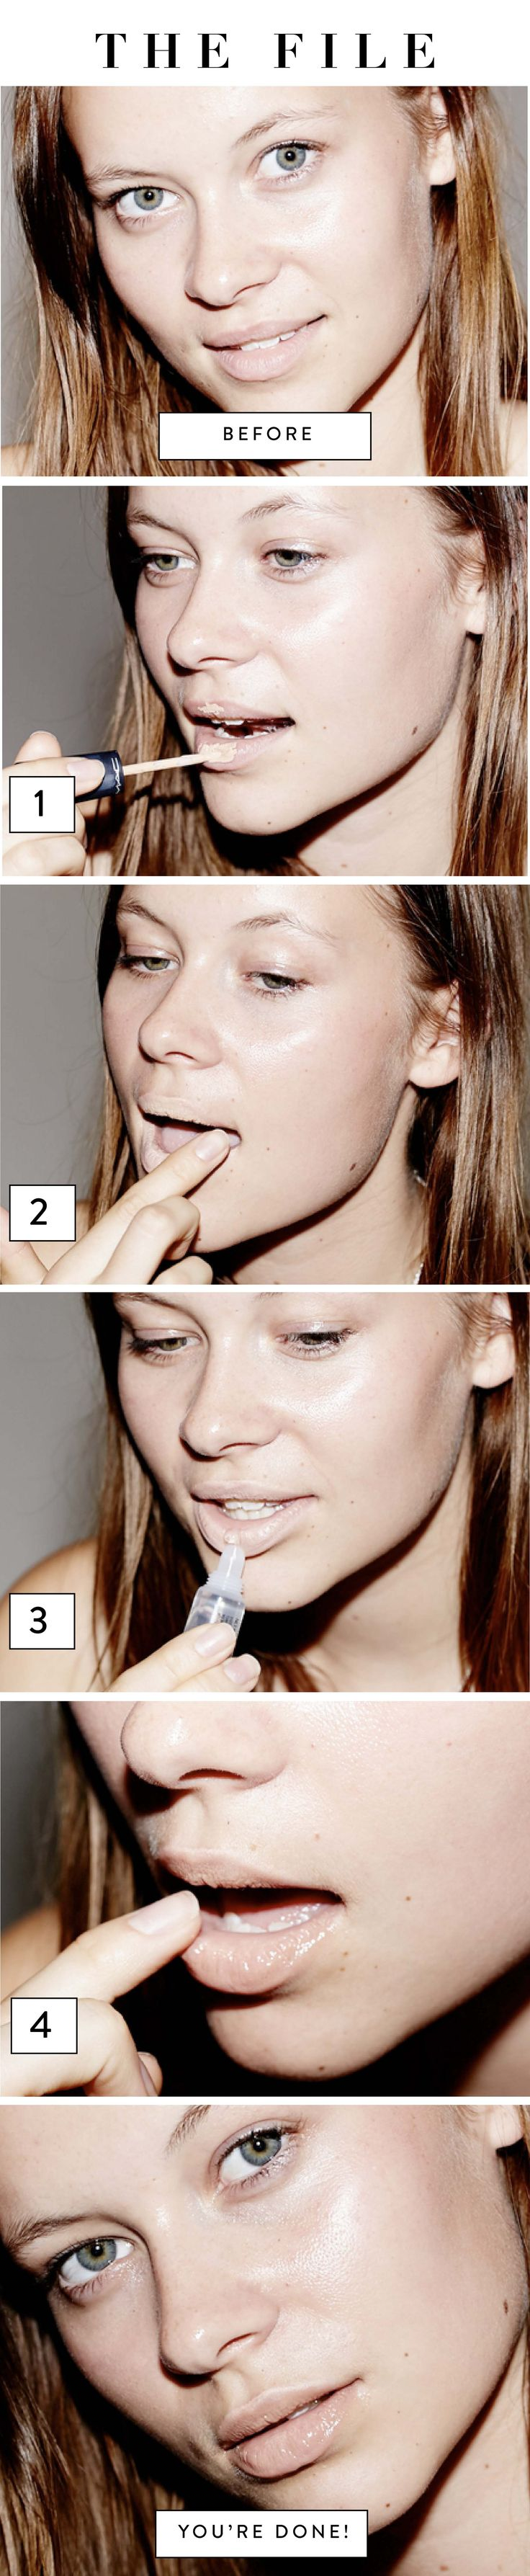 Big lips are a blessing that few of us can boast about. Consider this your cheat sheet to the diy lip job. | THE FILE